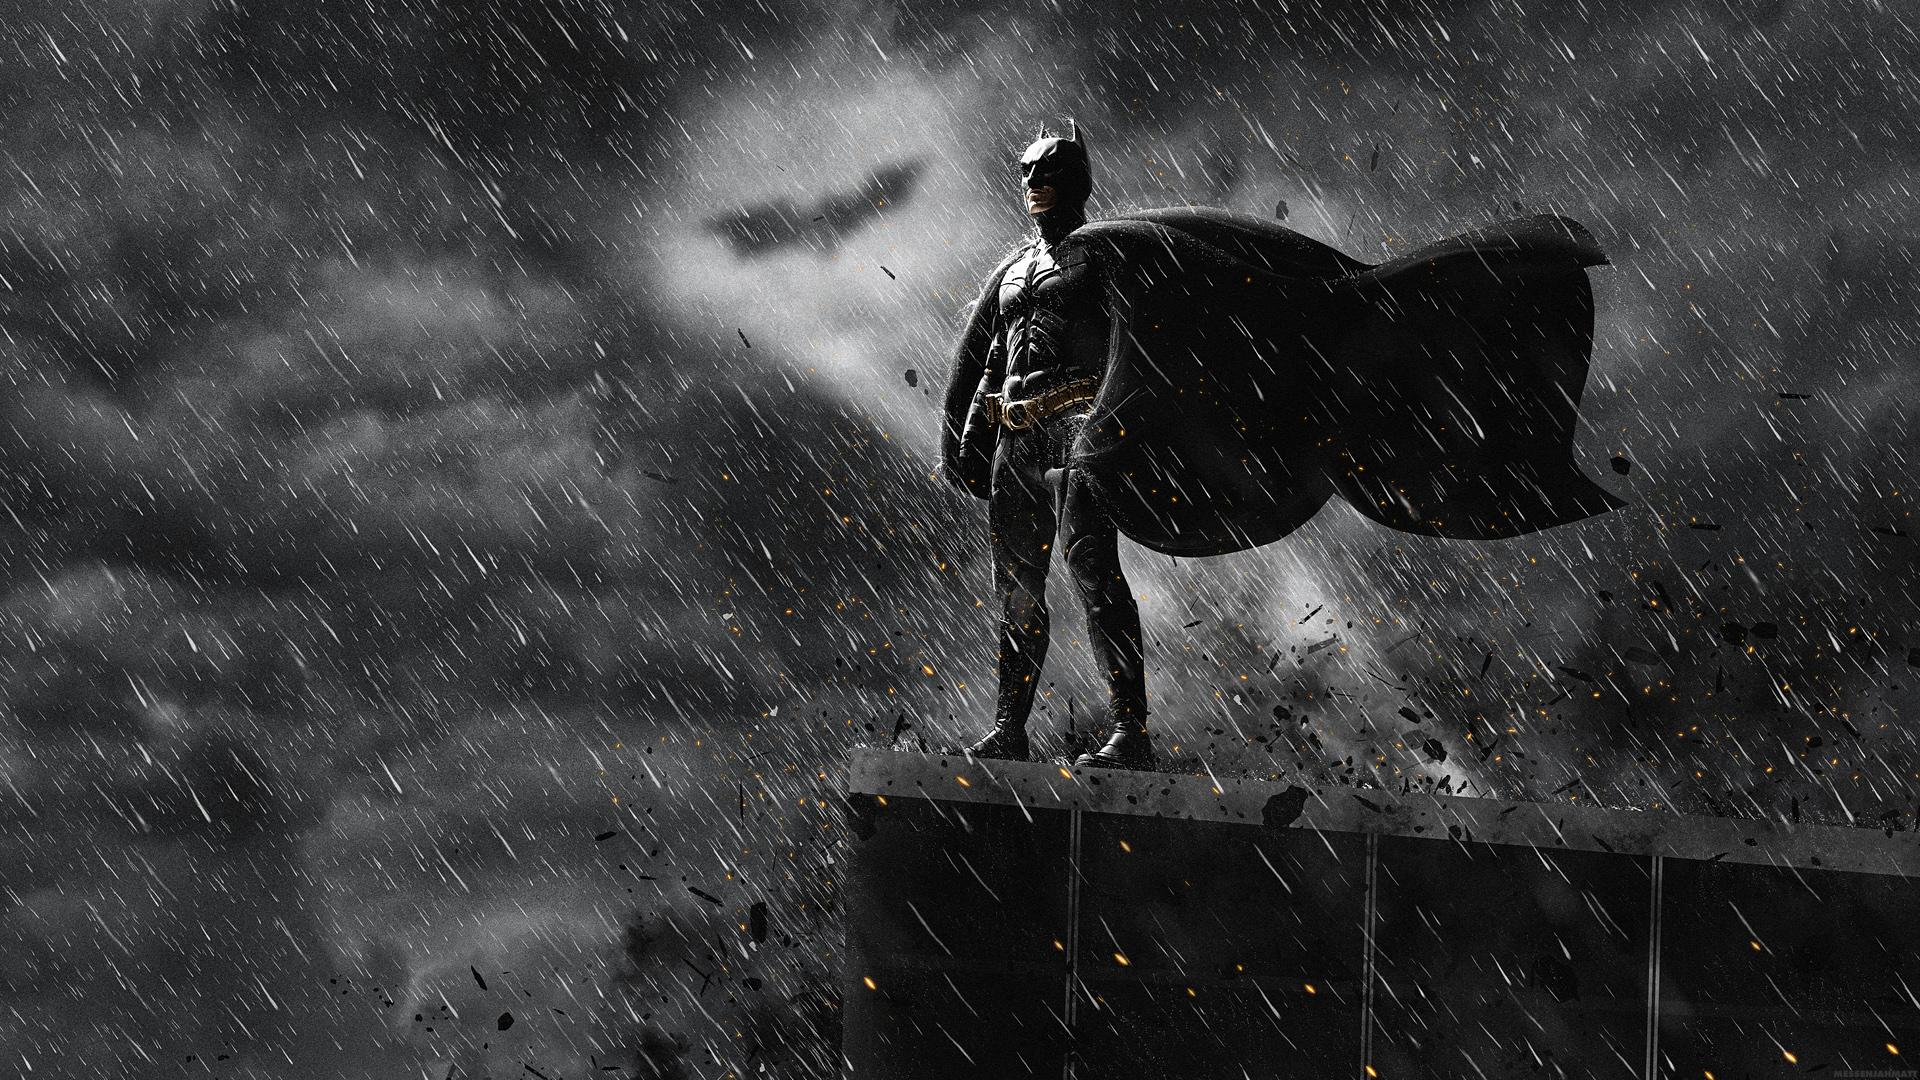 DARK KNIGHT RISES Batman Superhero Rain Wallpaper